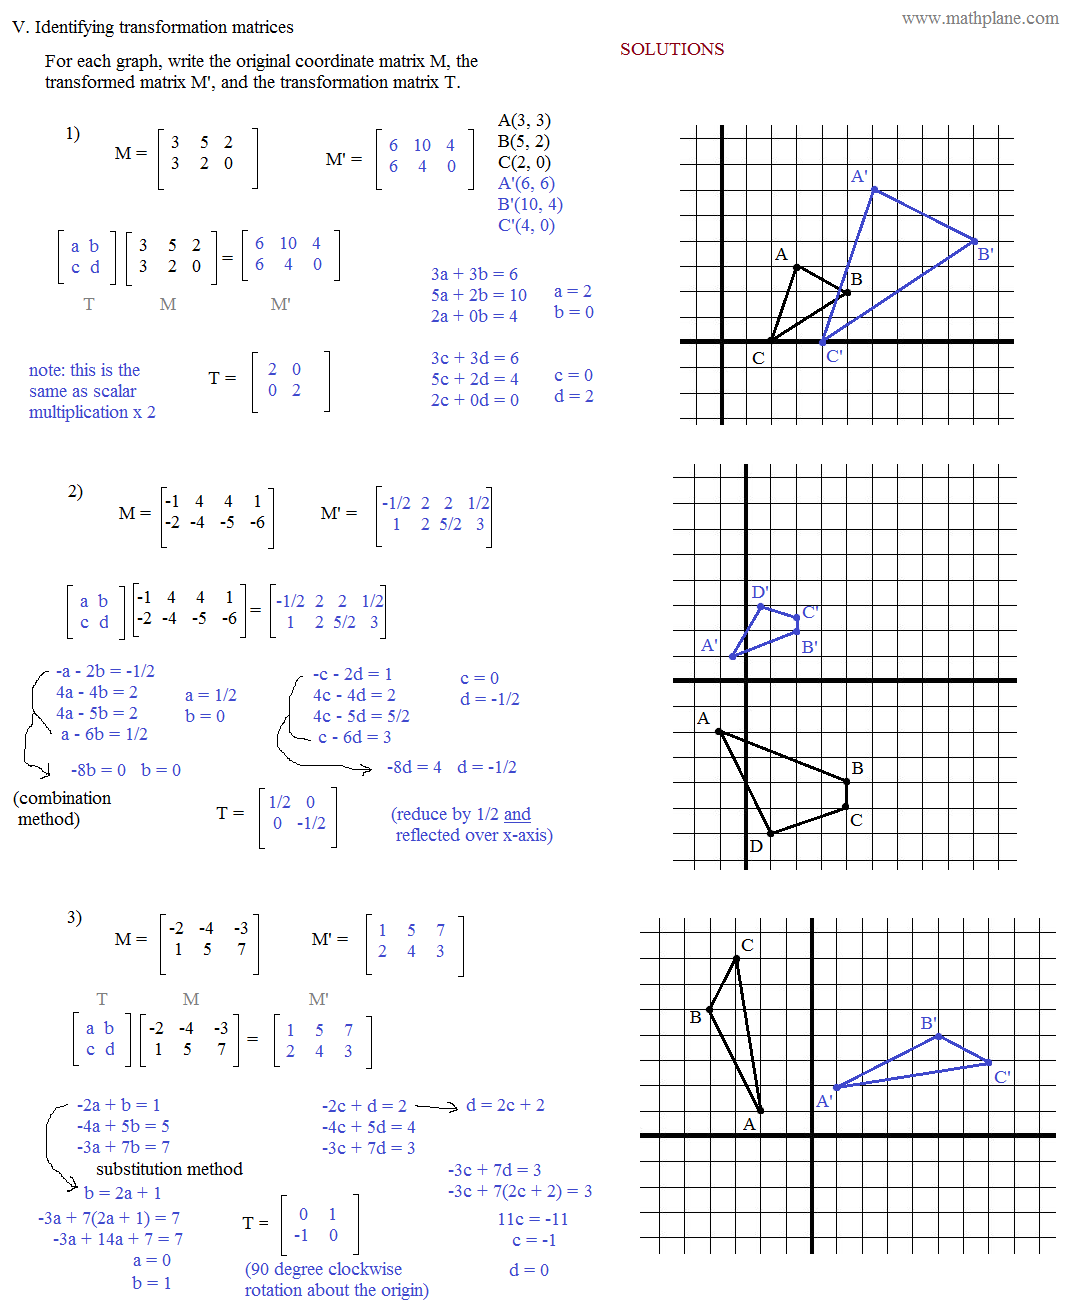 Worksheets Coordinate Plane Worksheets Middle School math plane matrix iii coordinate geometry worksheet 3 solutions